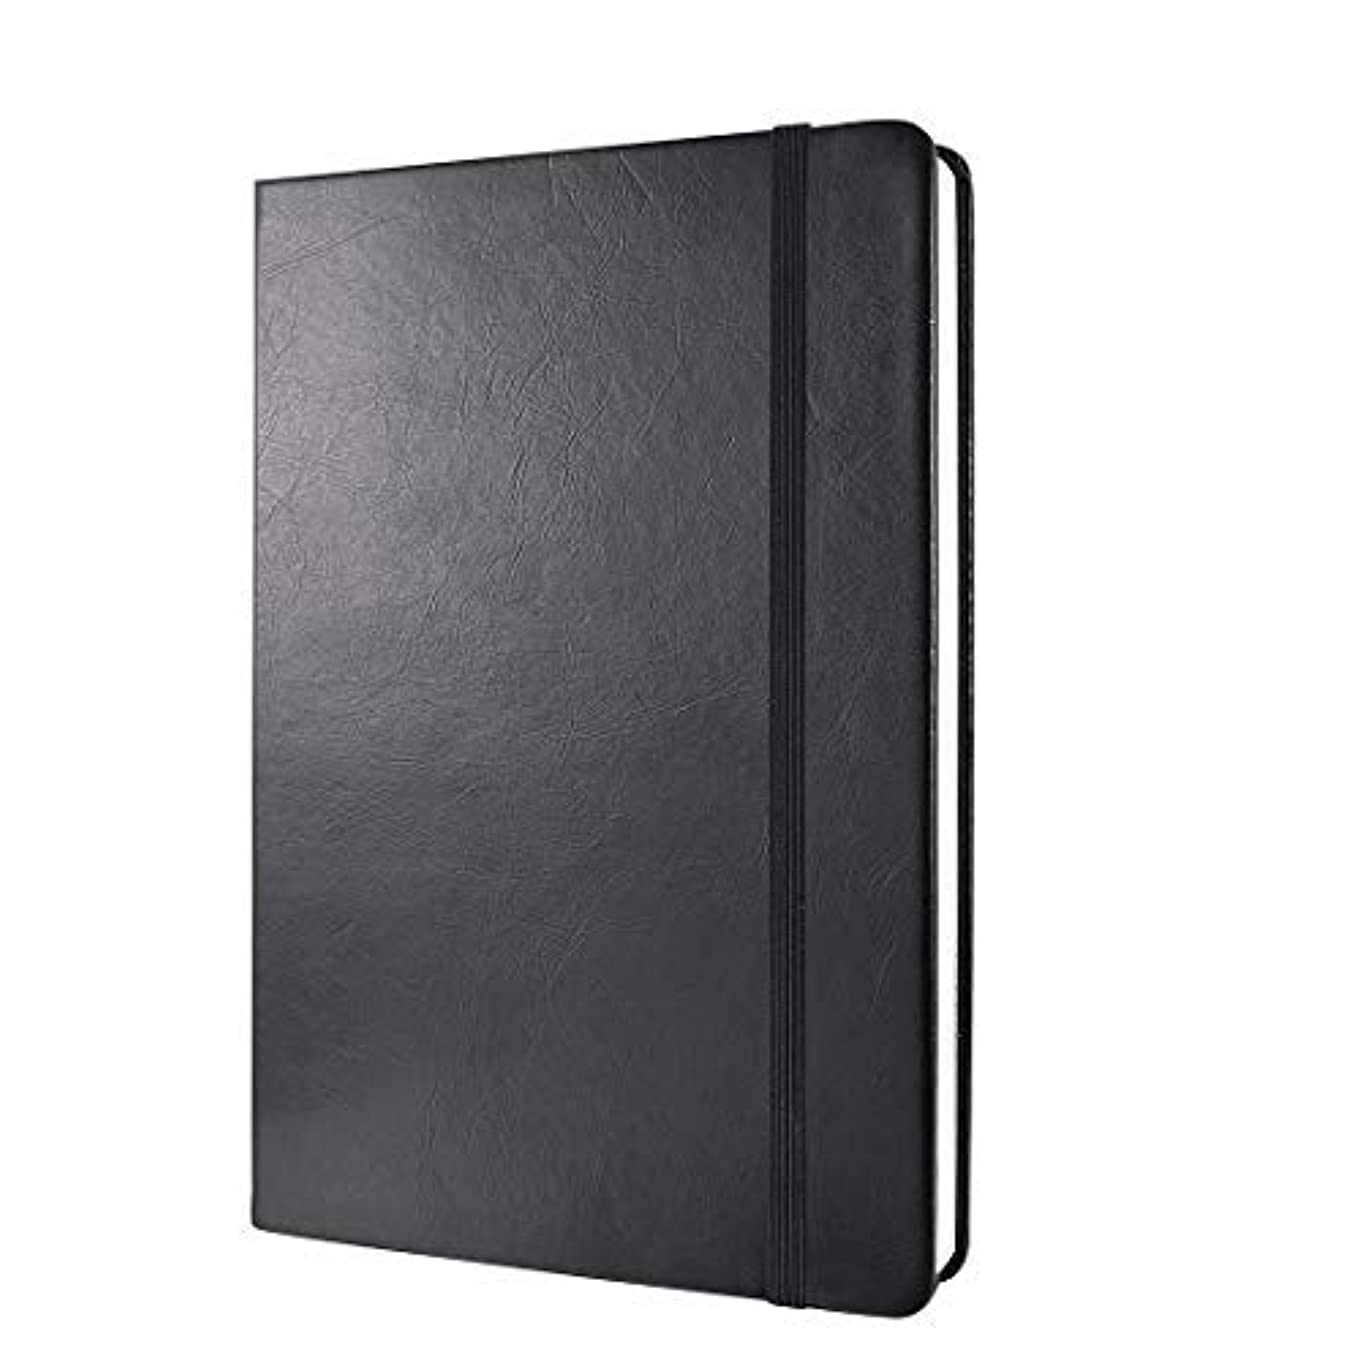 (Black) - Dotted Grid Bullet Notebook Journal Dot Hard Cover A5 Premium 100gsm Thick Acid-free Paper with Fine Inner Pocket, Black Smooth Faux Leather, Christmas Gift-240 Pages